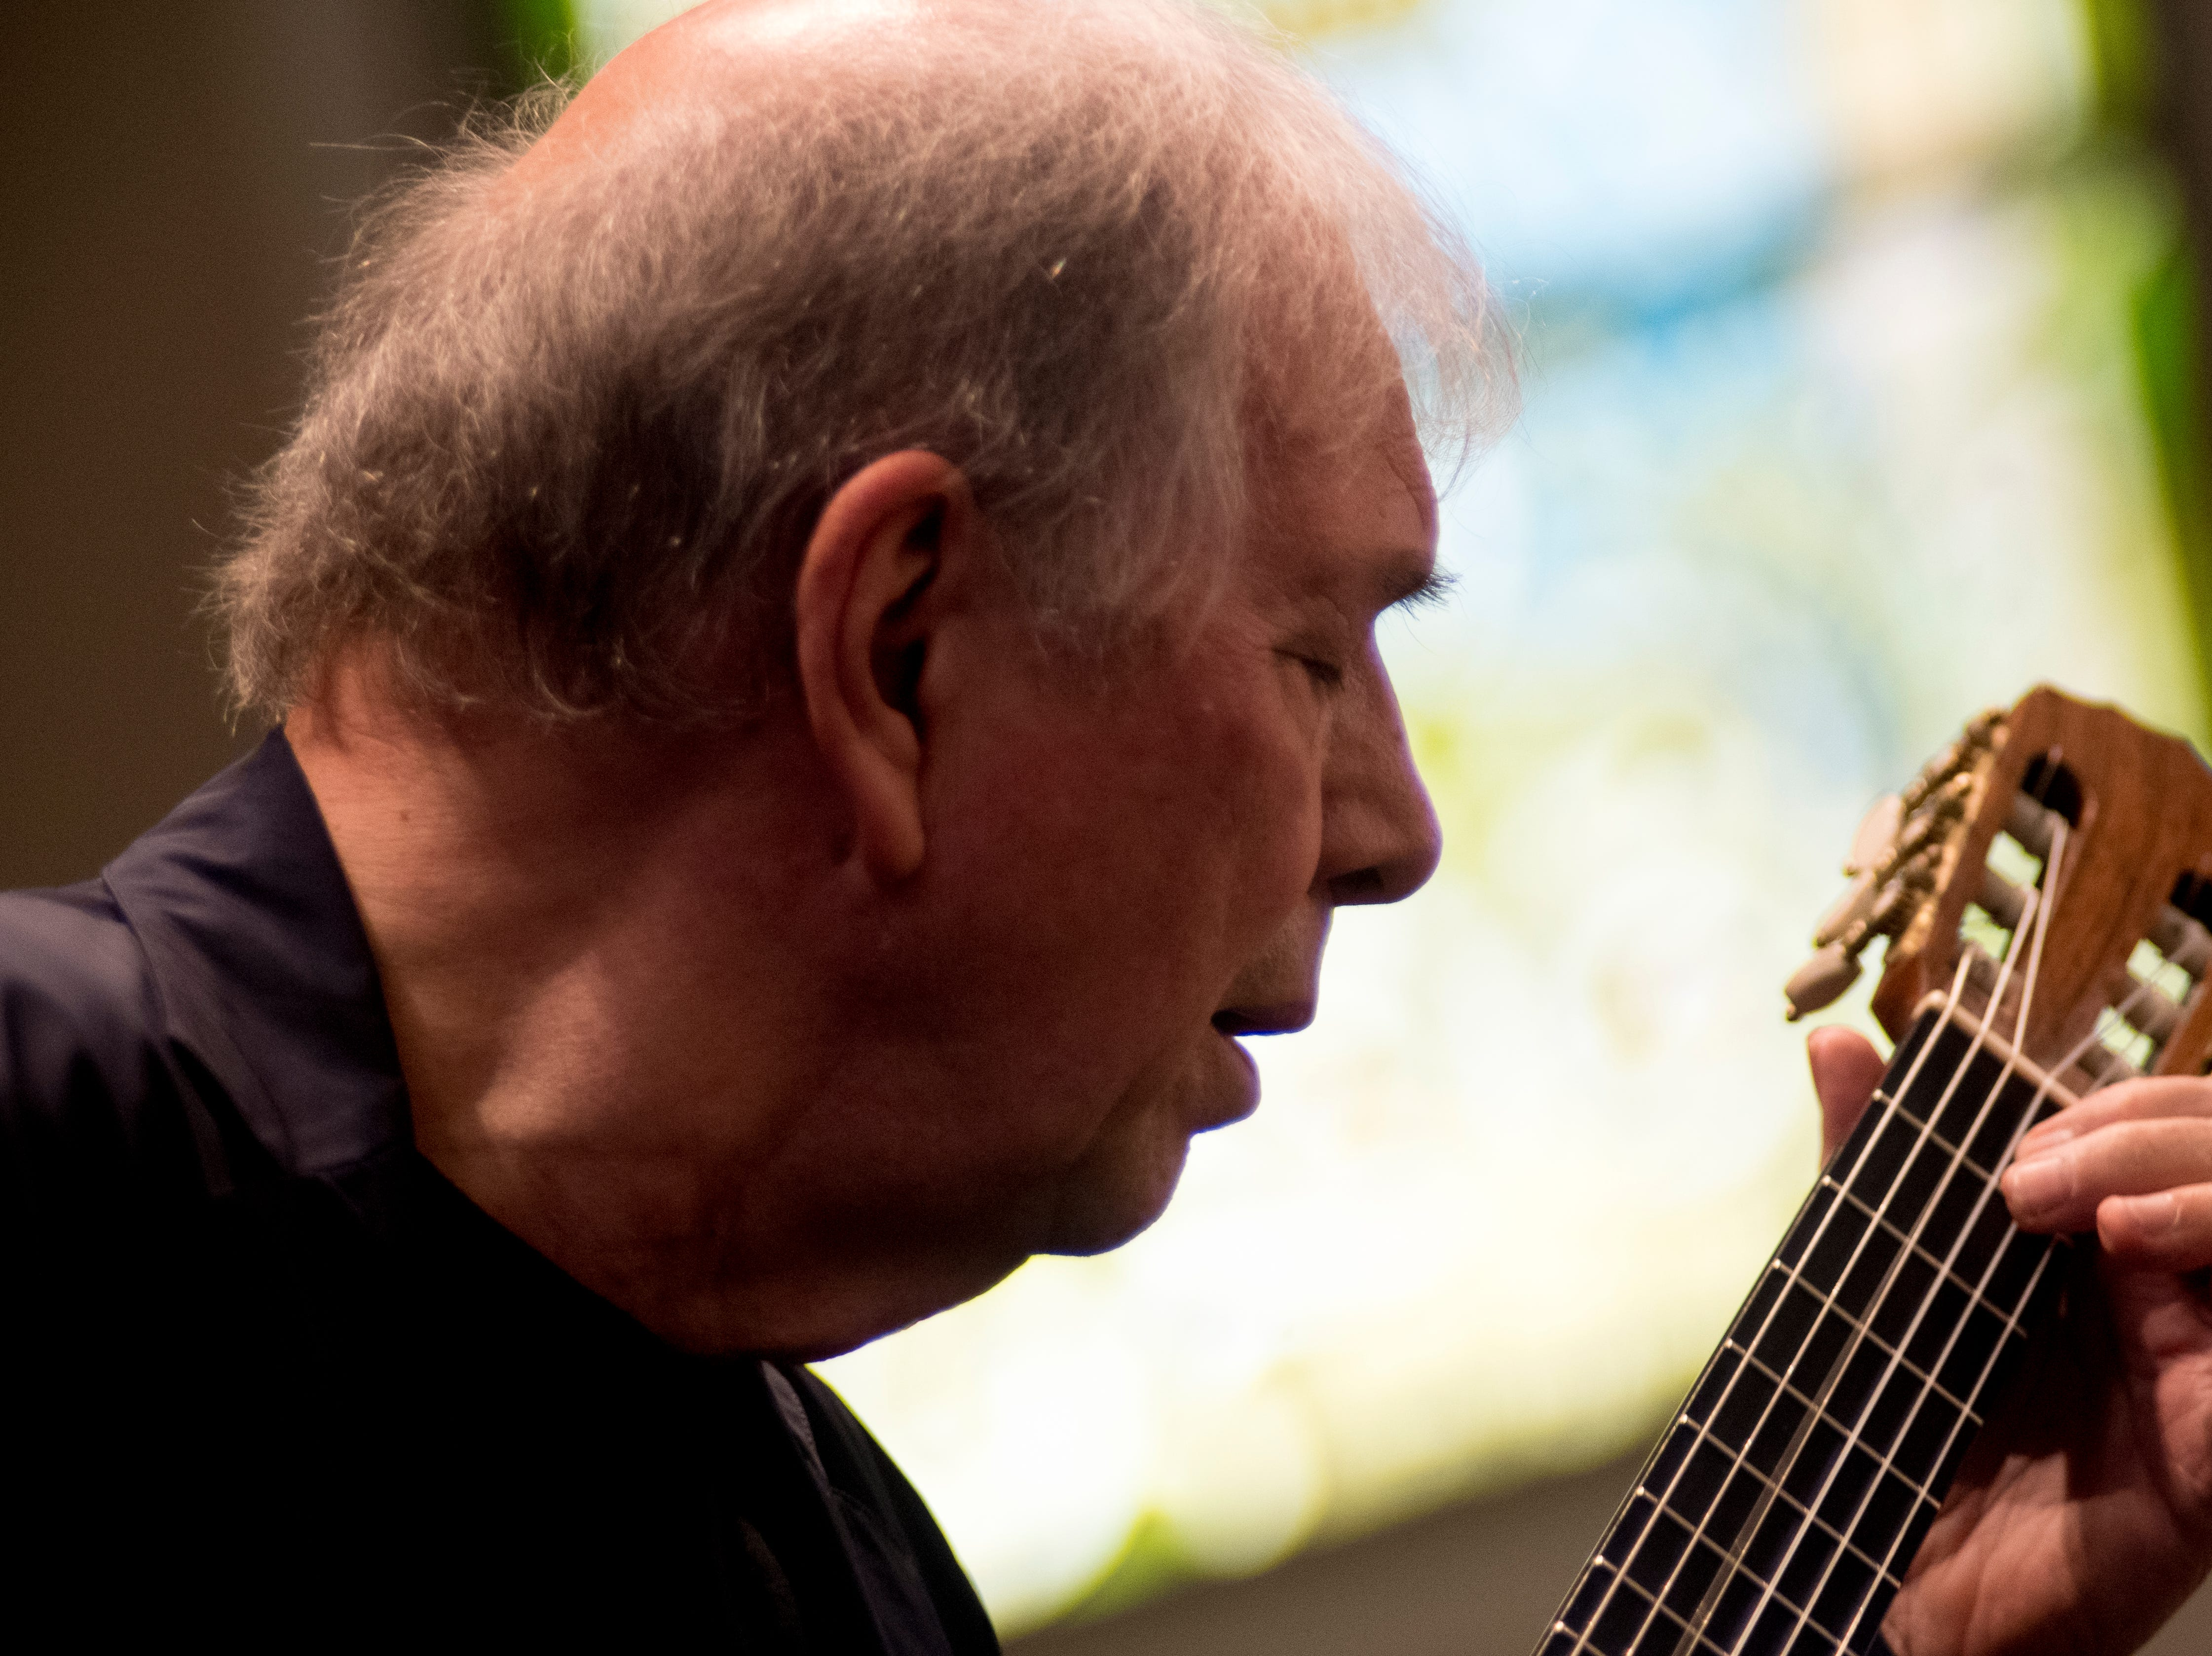 Ralph Towner performs at St. John's Episcopal Church during Big Ears Festival 2019 in Knoxville, Tennessee on Friday, March 22, 2019.